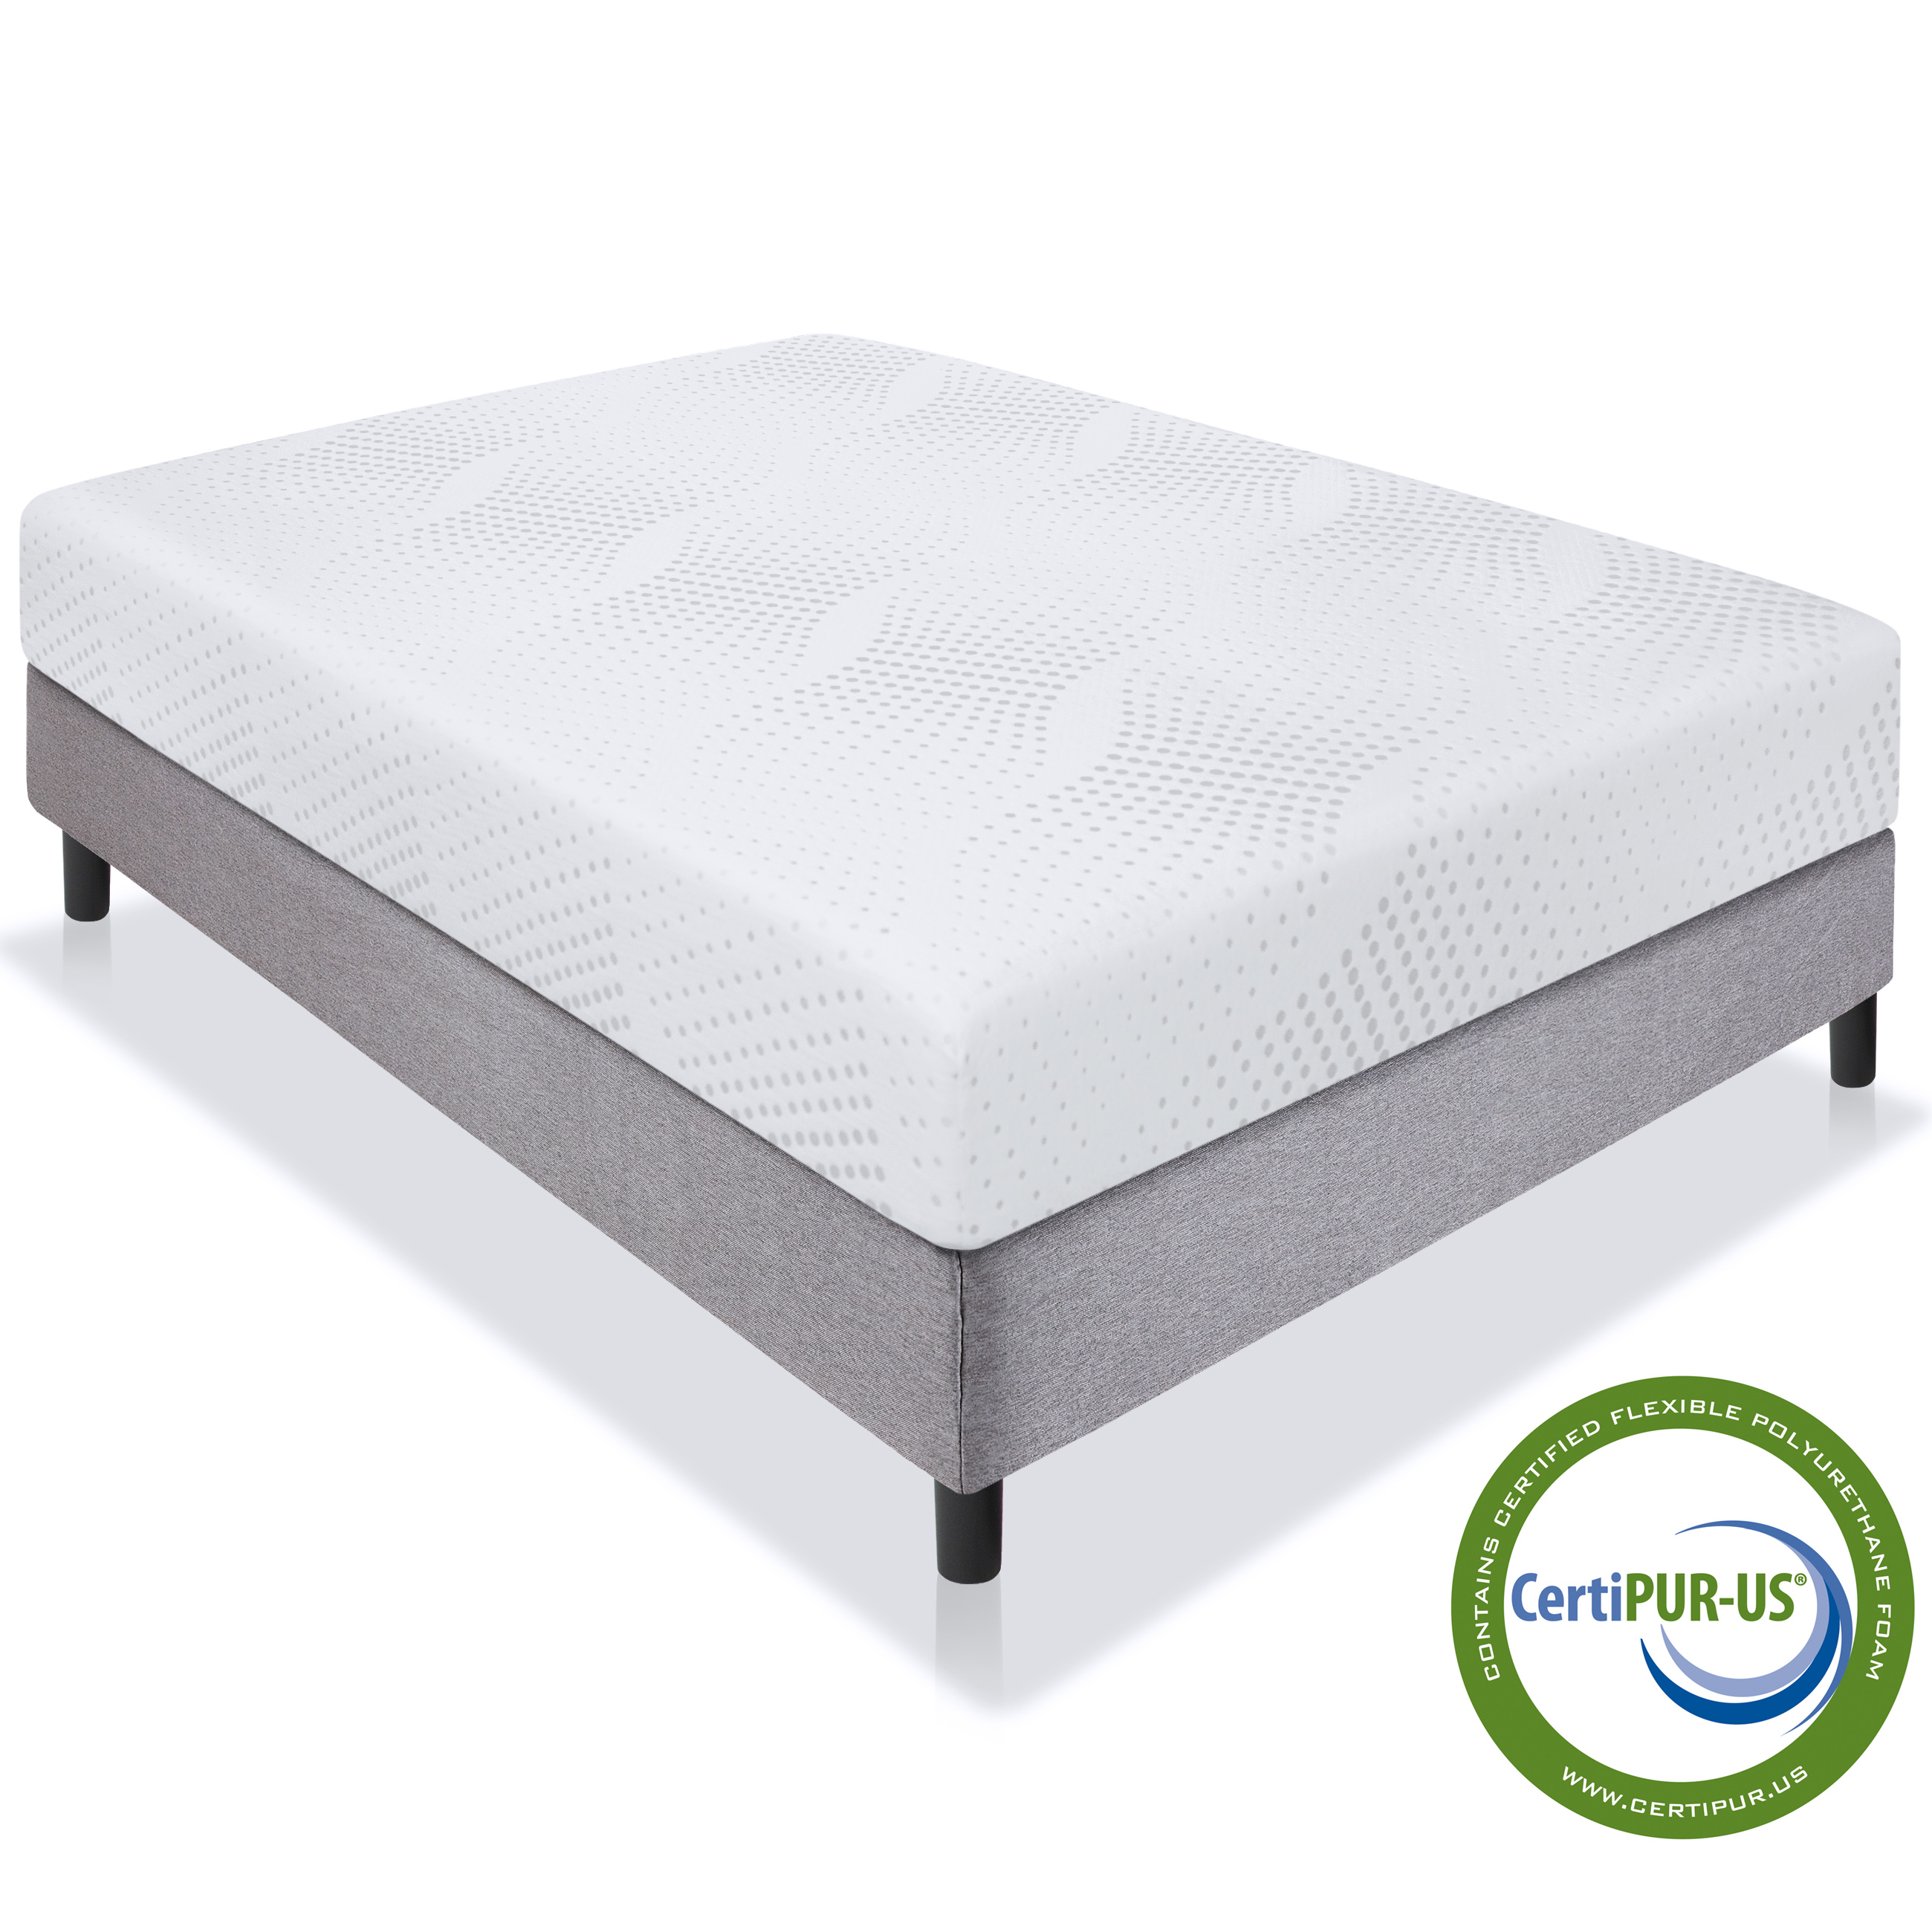 10 gel memory foam mattress Best Choice Products 10in Queen Size Dual Layered Medium Firm  10 gel memory foam mattress